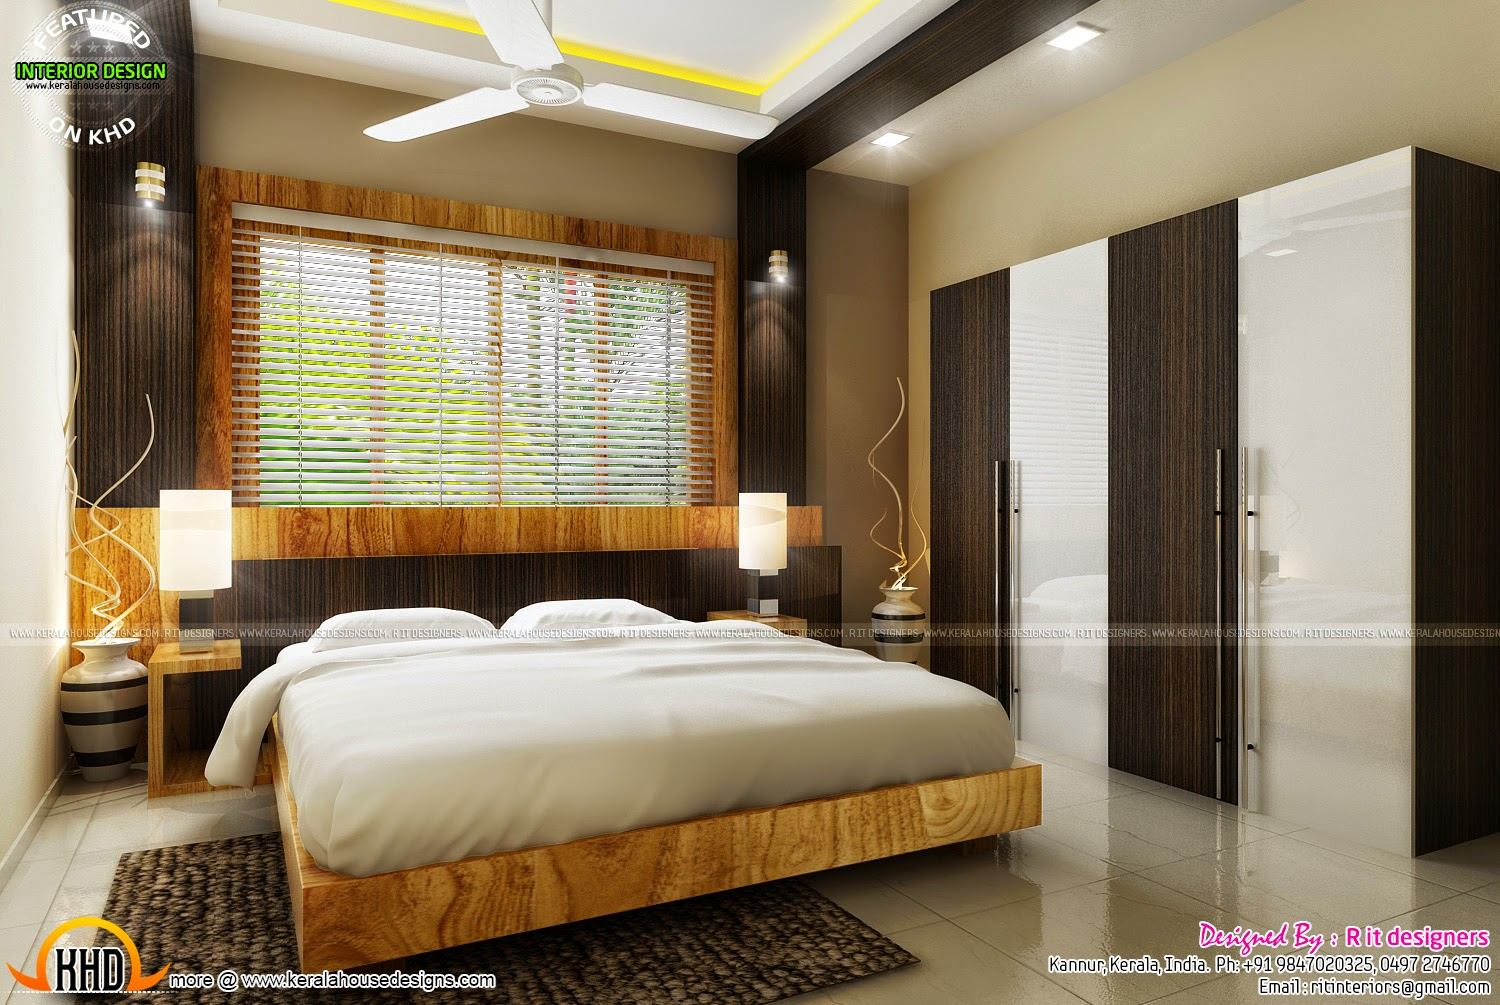 Bedroom interior design with cost kerala home design and floor plans - Designers bedrooms ...